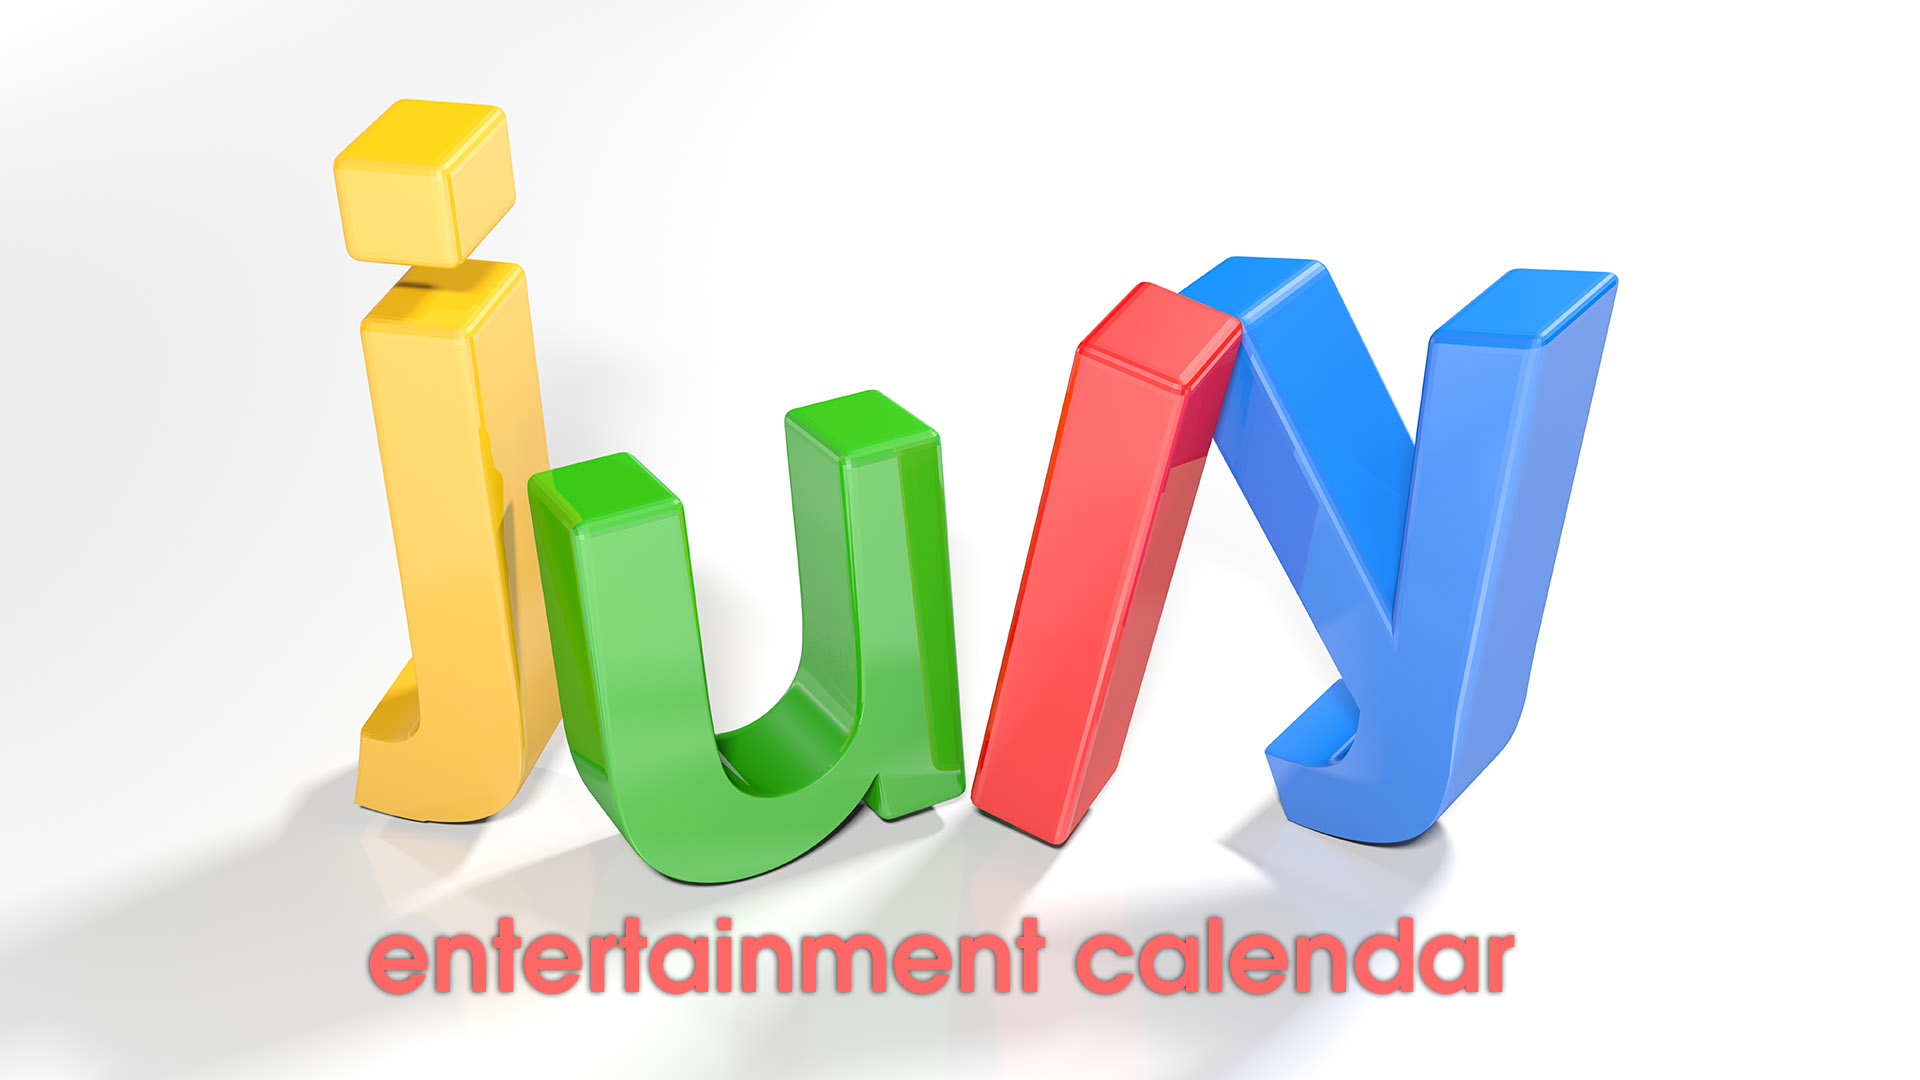 July entertainment calendar: Your complete guide to concerts, Independence Day fun, movies, events and more